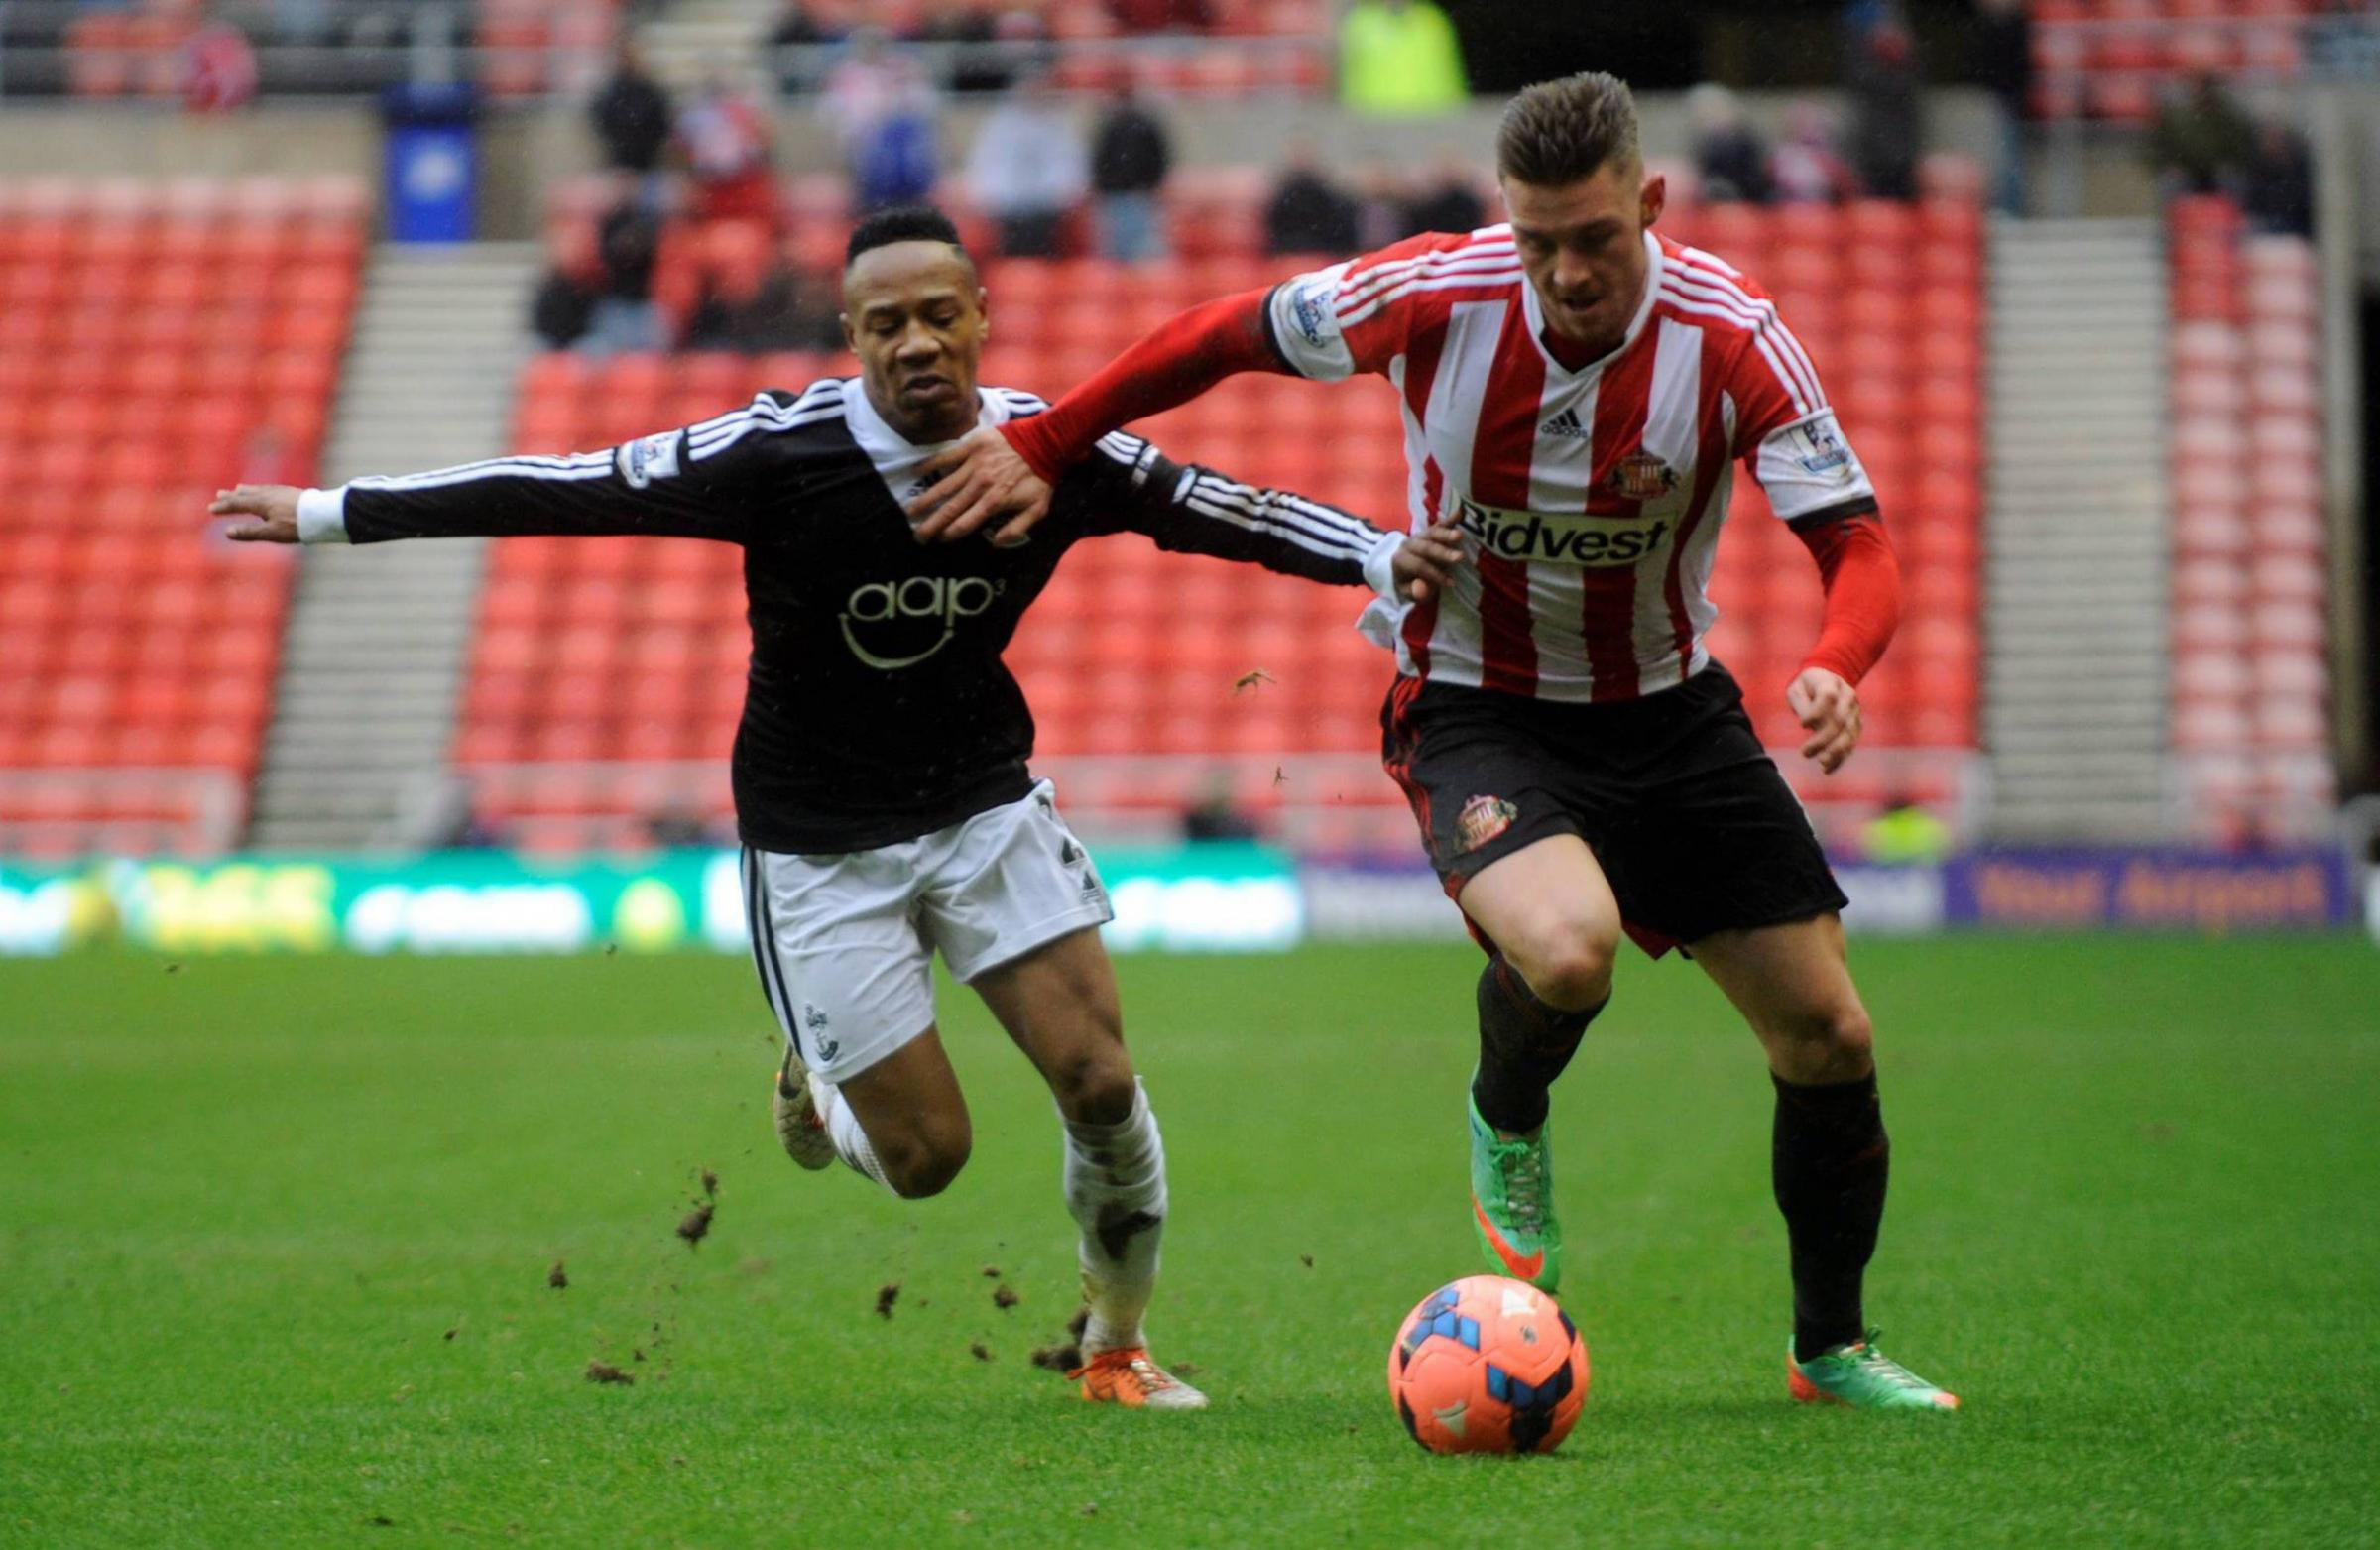 POINT TO PROVE: Sunderland's Connor Wickham sprints past Nataniel Clyne during the FA Cup 5th Round match between Sunderland and Southampton at the Stadium of Light